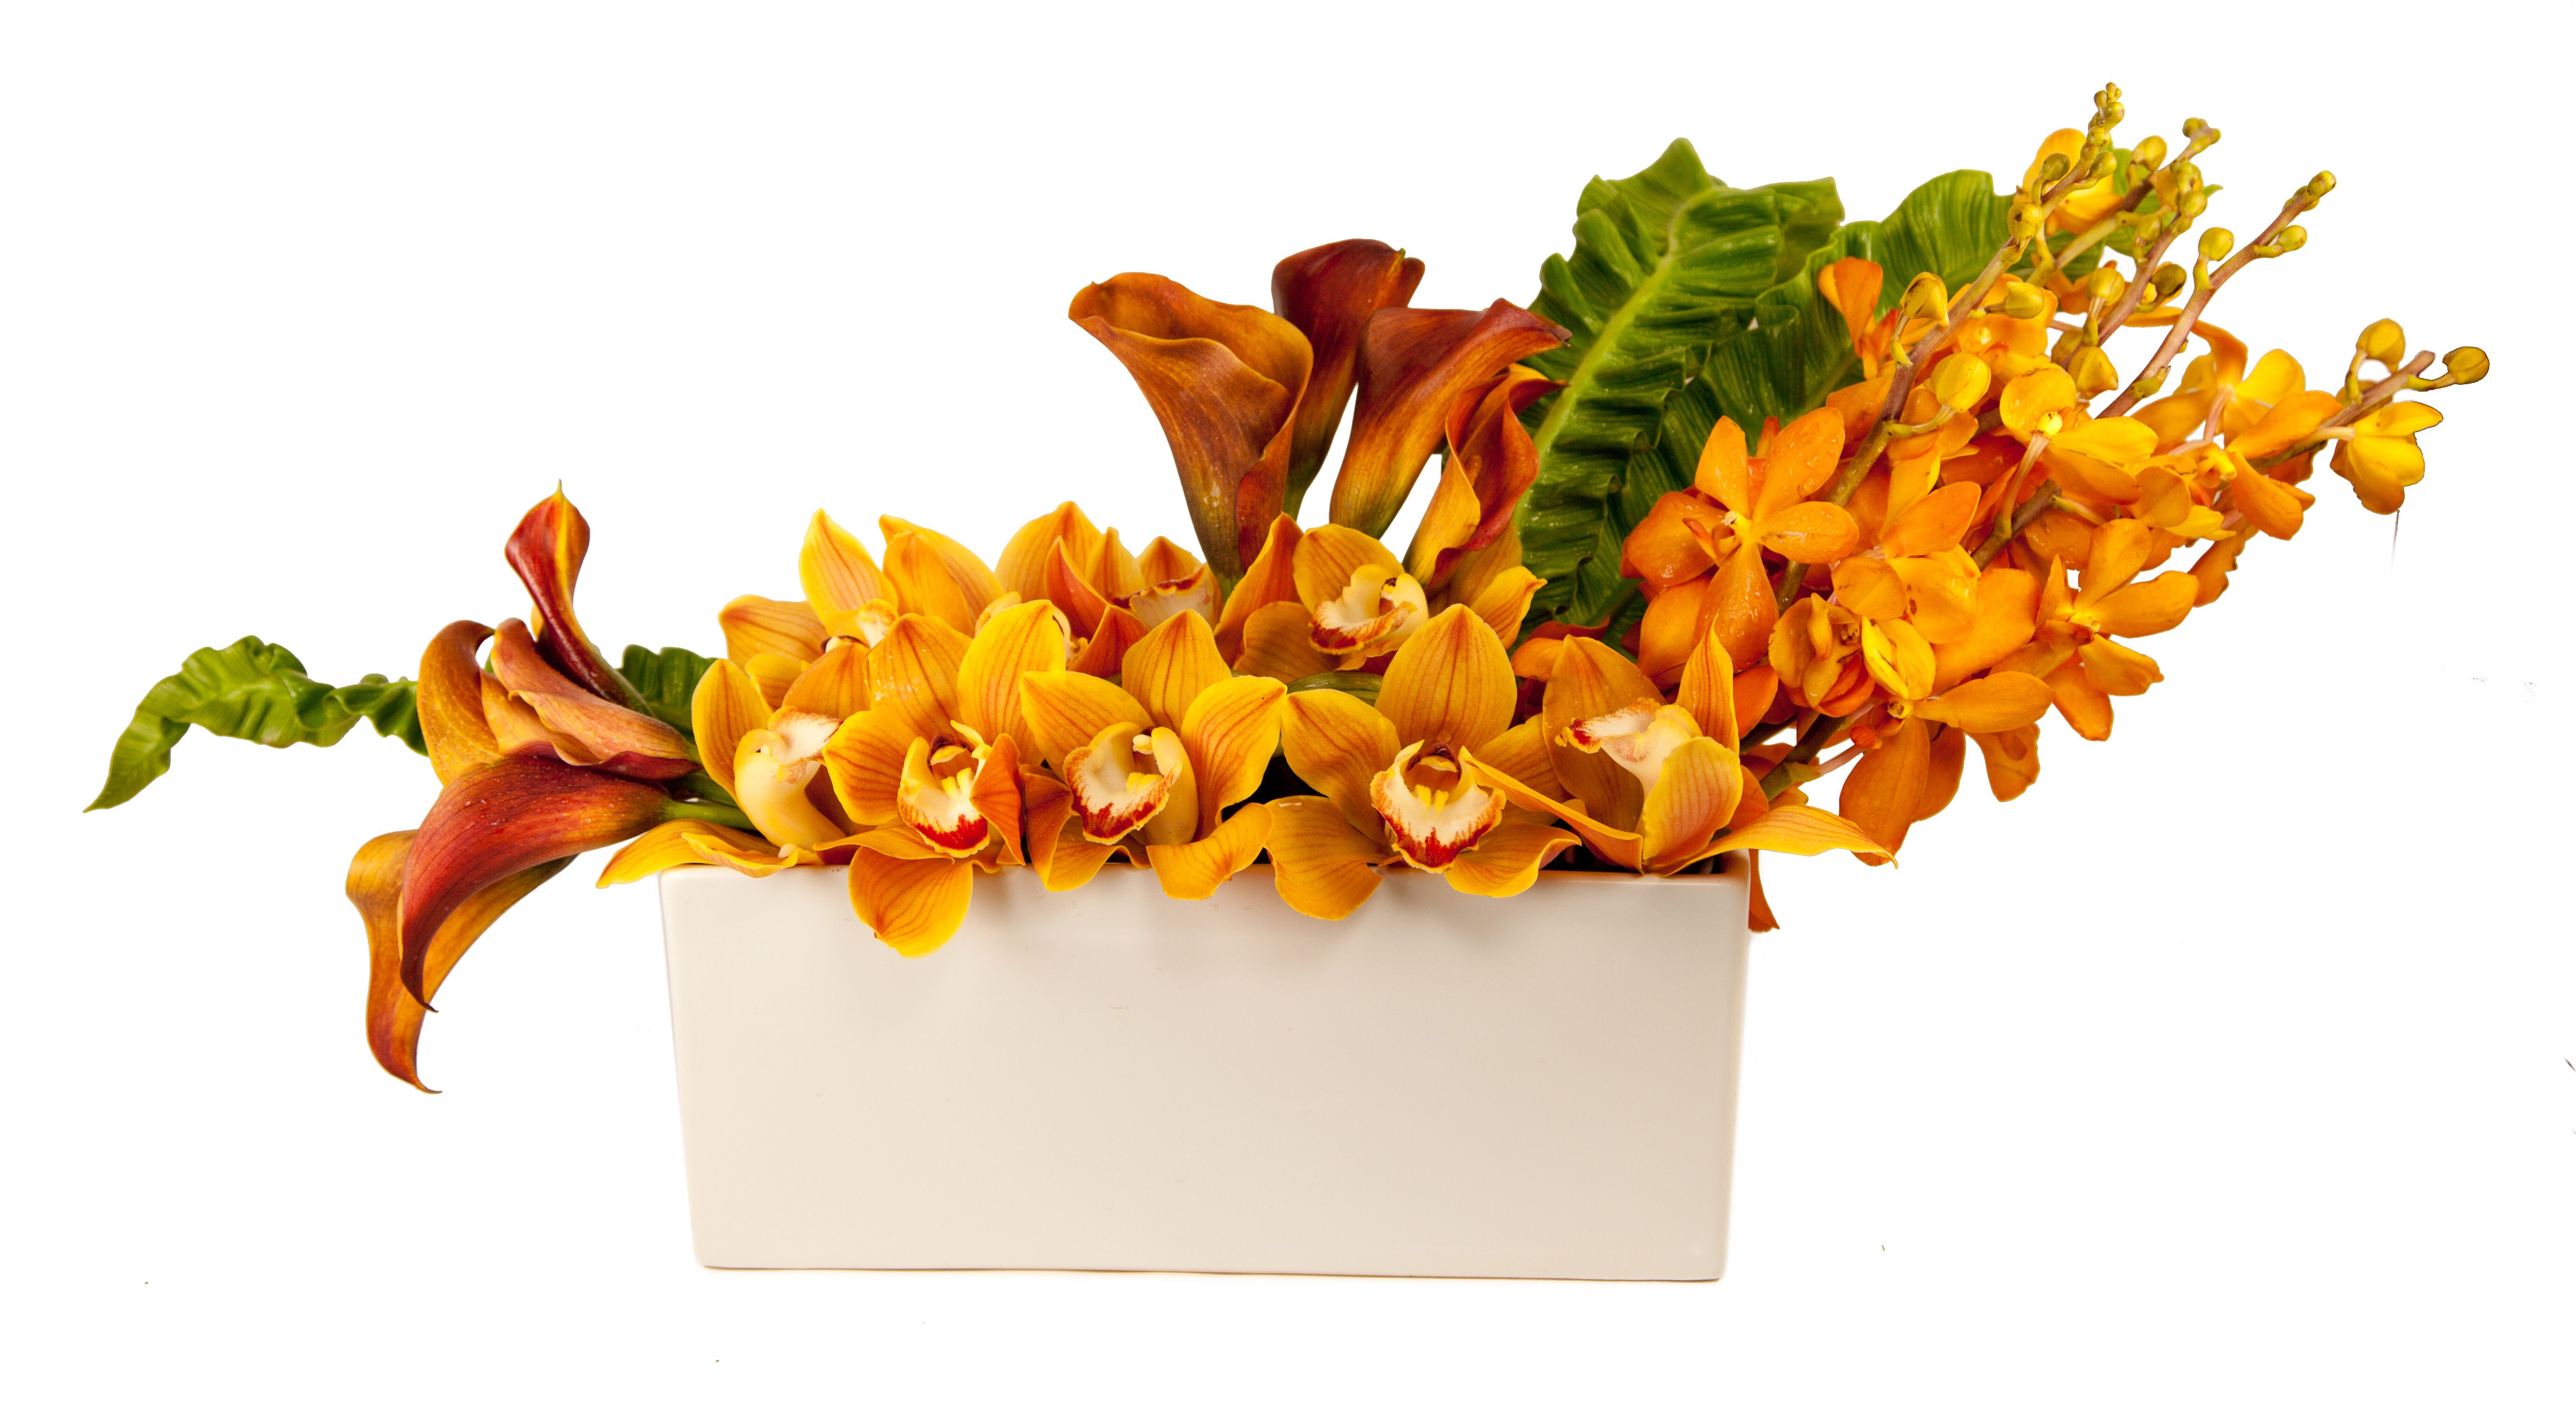 Orange flowers Same day flower delivery, Flower delivery